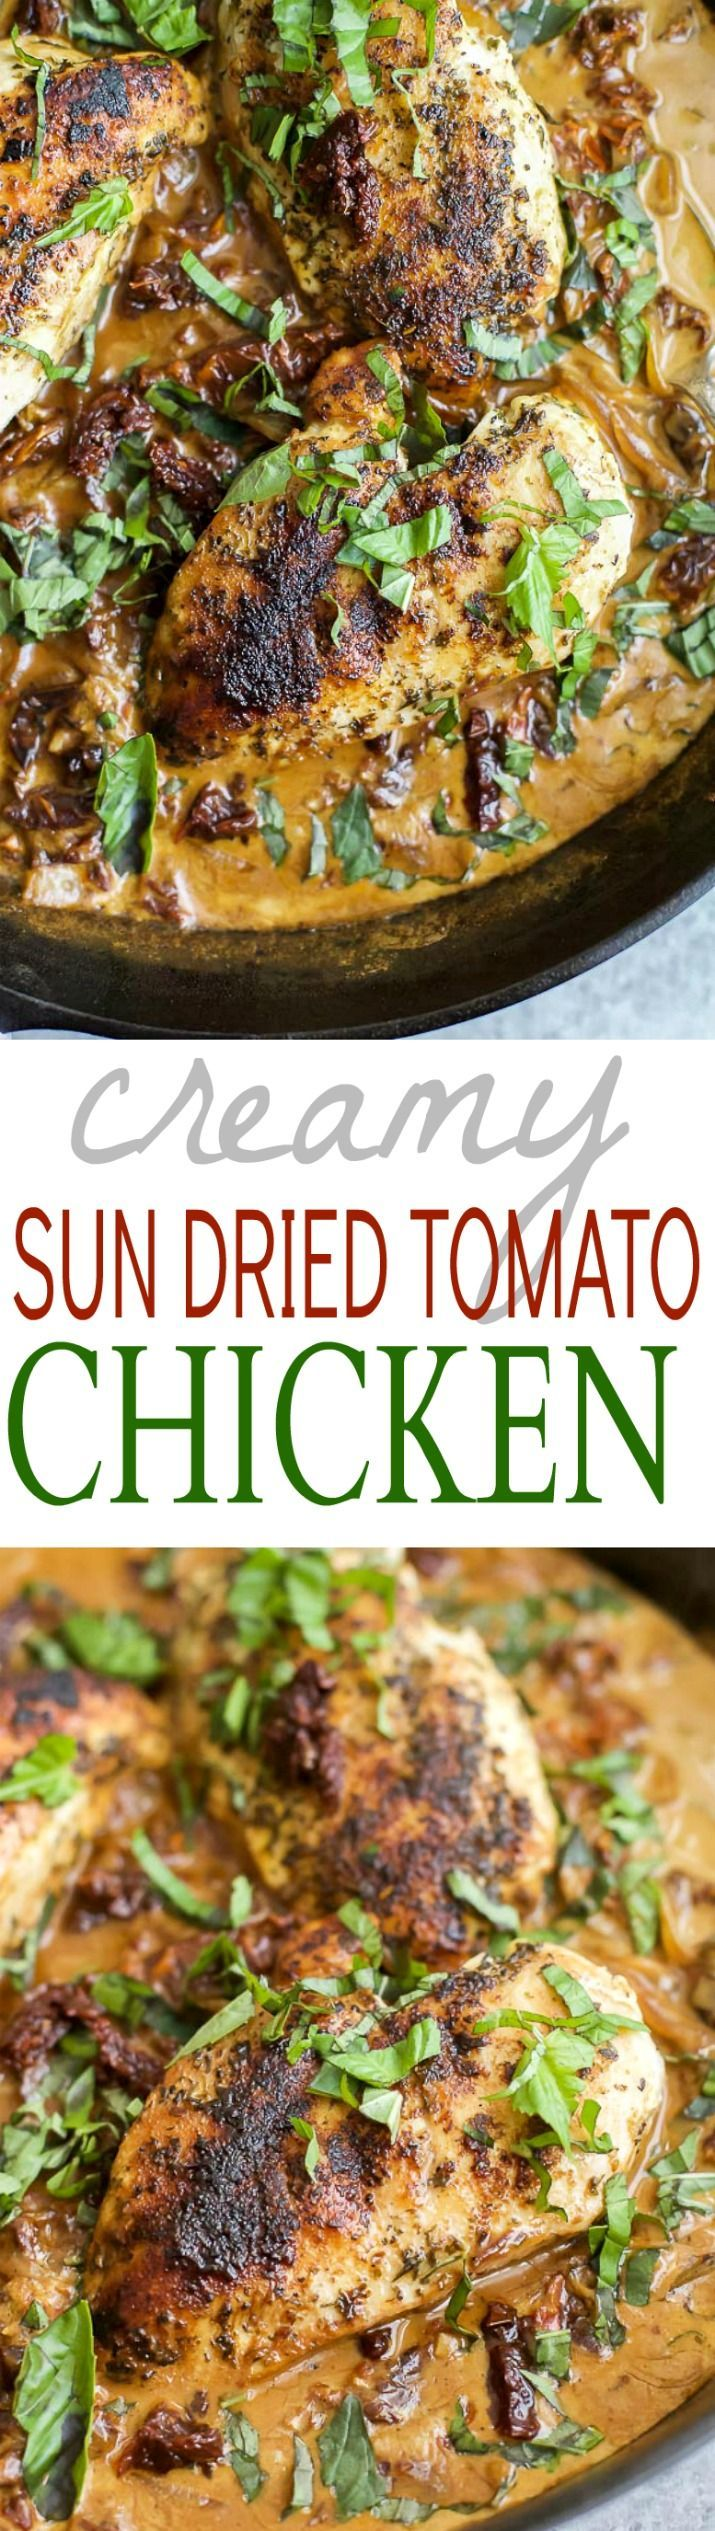 Dairy Free CREAMY SUN DRIED TOMATO CHICKEN loaded with sun dried tomato flavor and a nice pop of basil for freshness! All made in one skillet for easy clean up! | joyfulhealthyeats.com | gluten free recipes